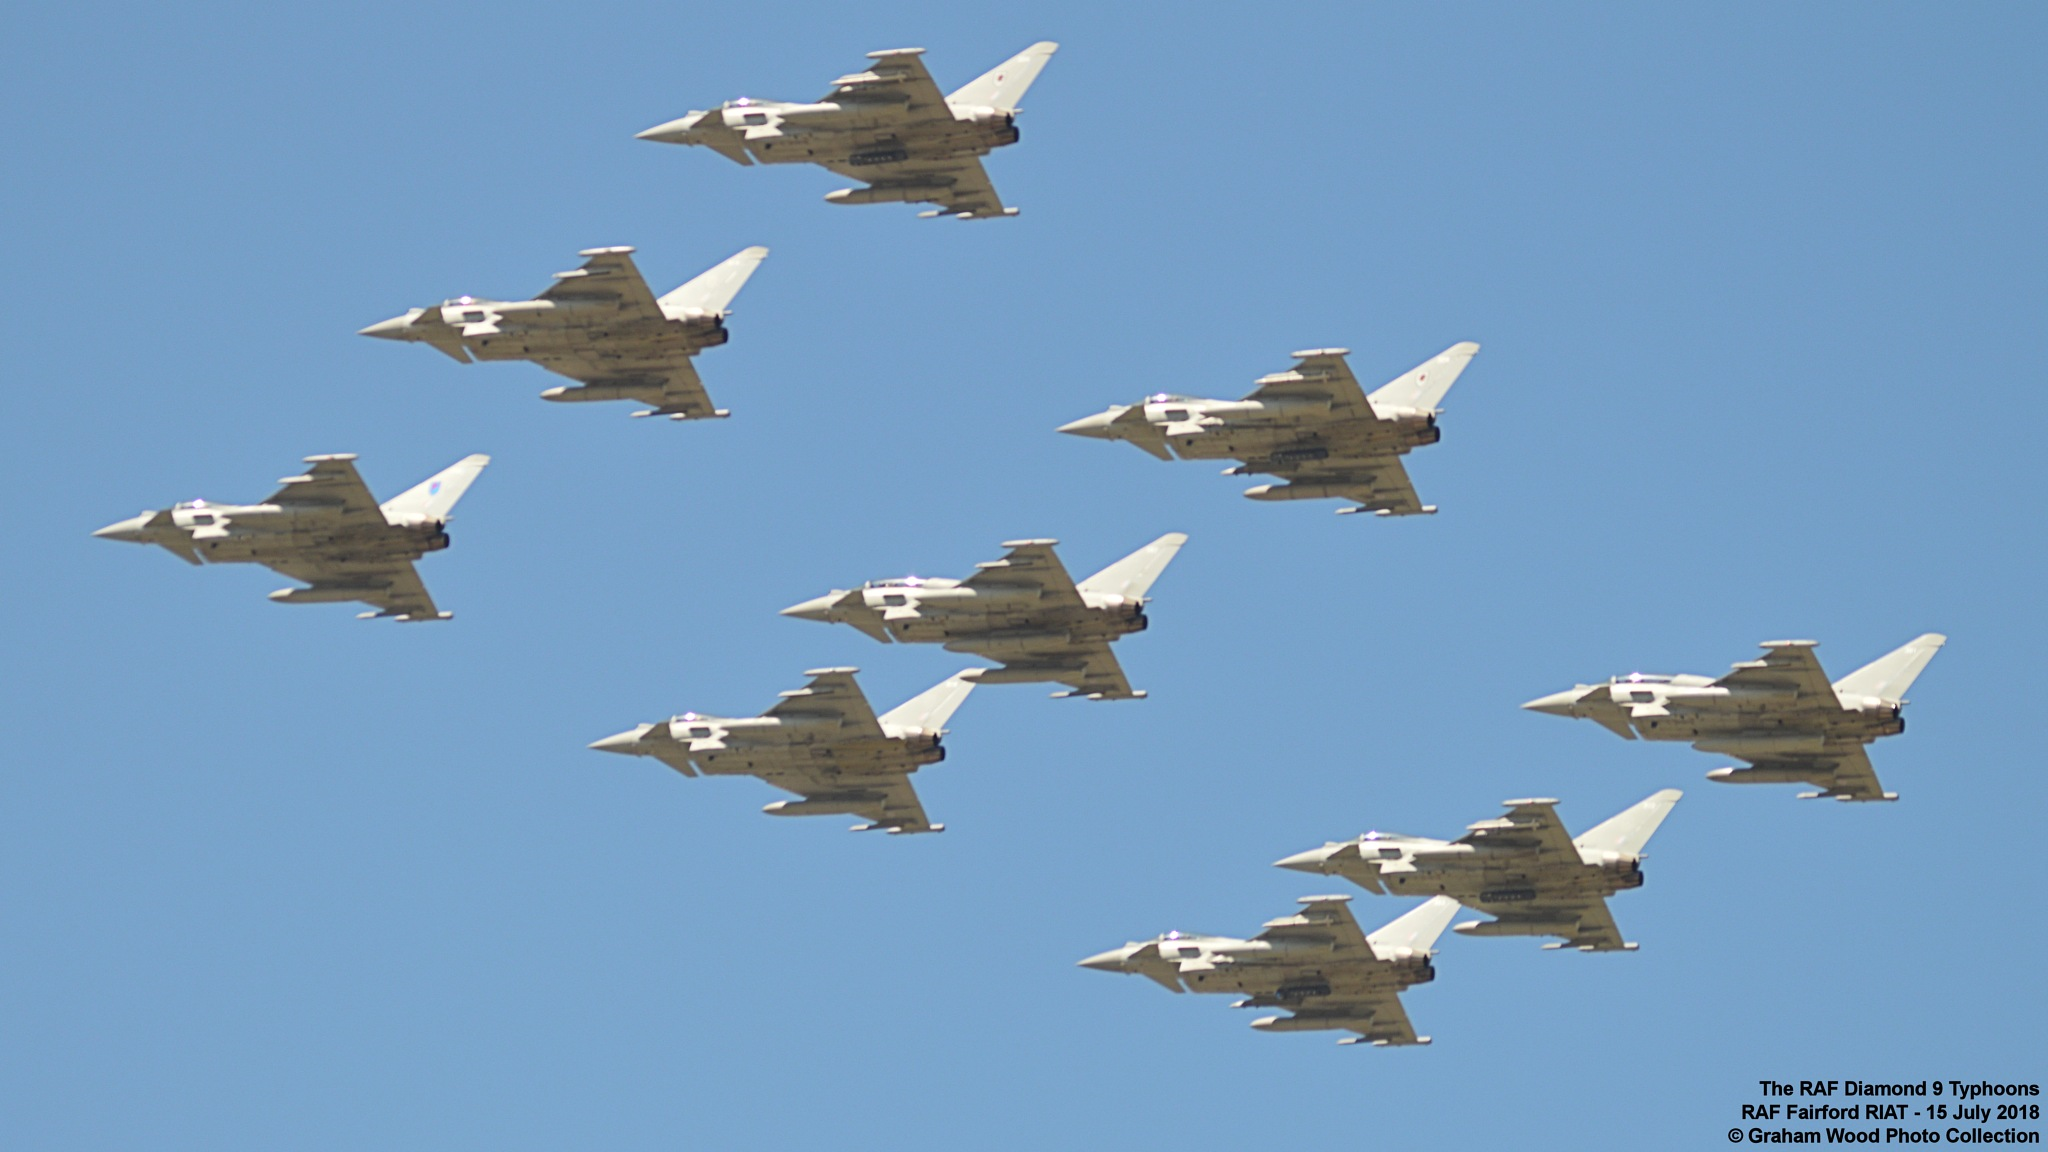 The RAF Diamond 9 Typhoons  by Graham Wood Photo Collection